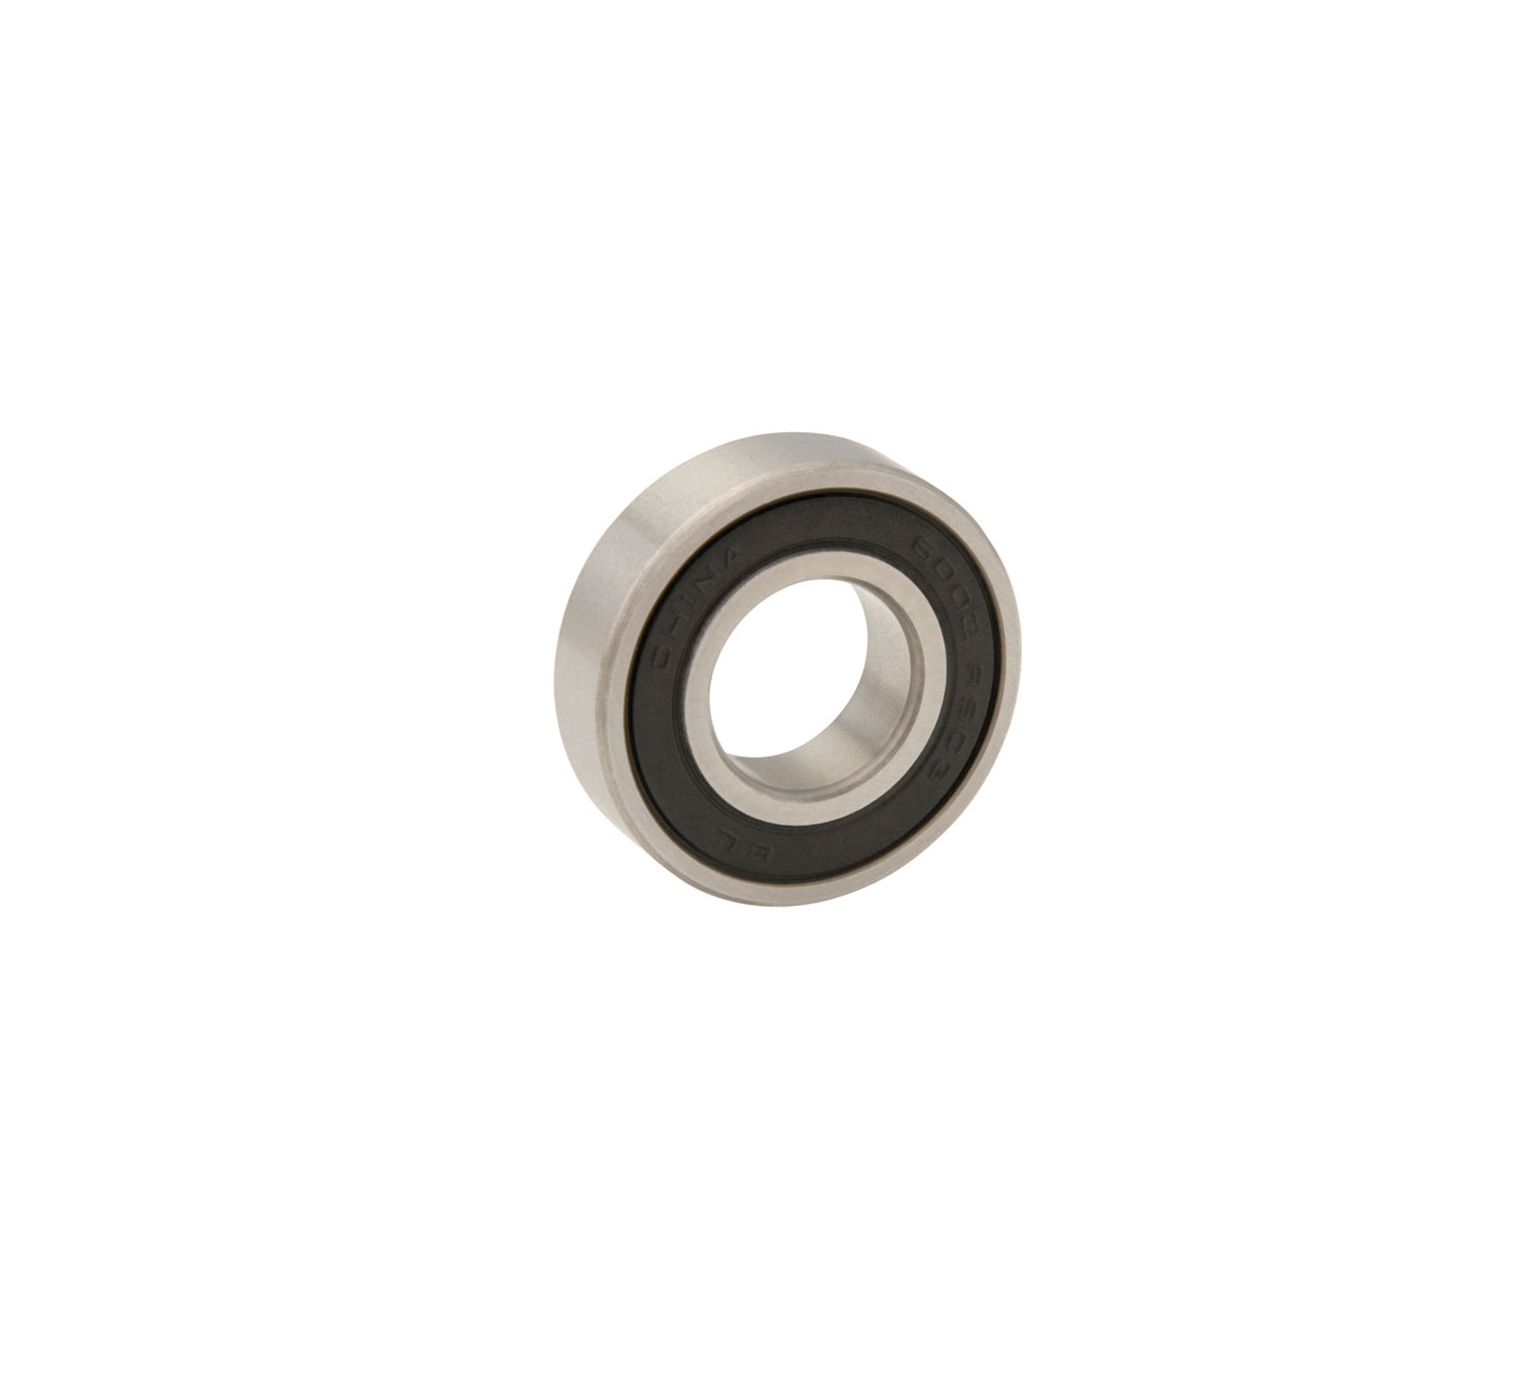 41360 Steel Ball Bearing - 1.26 OD x 0.591 ID x 0.354 in alt 1